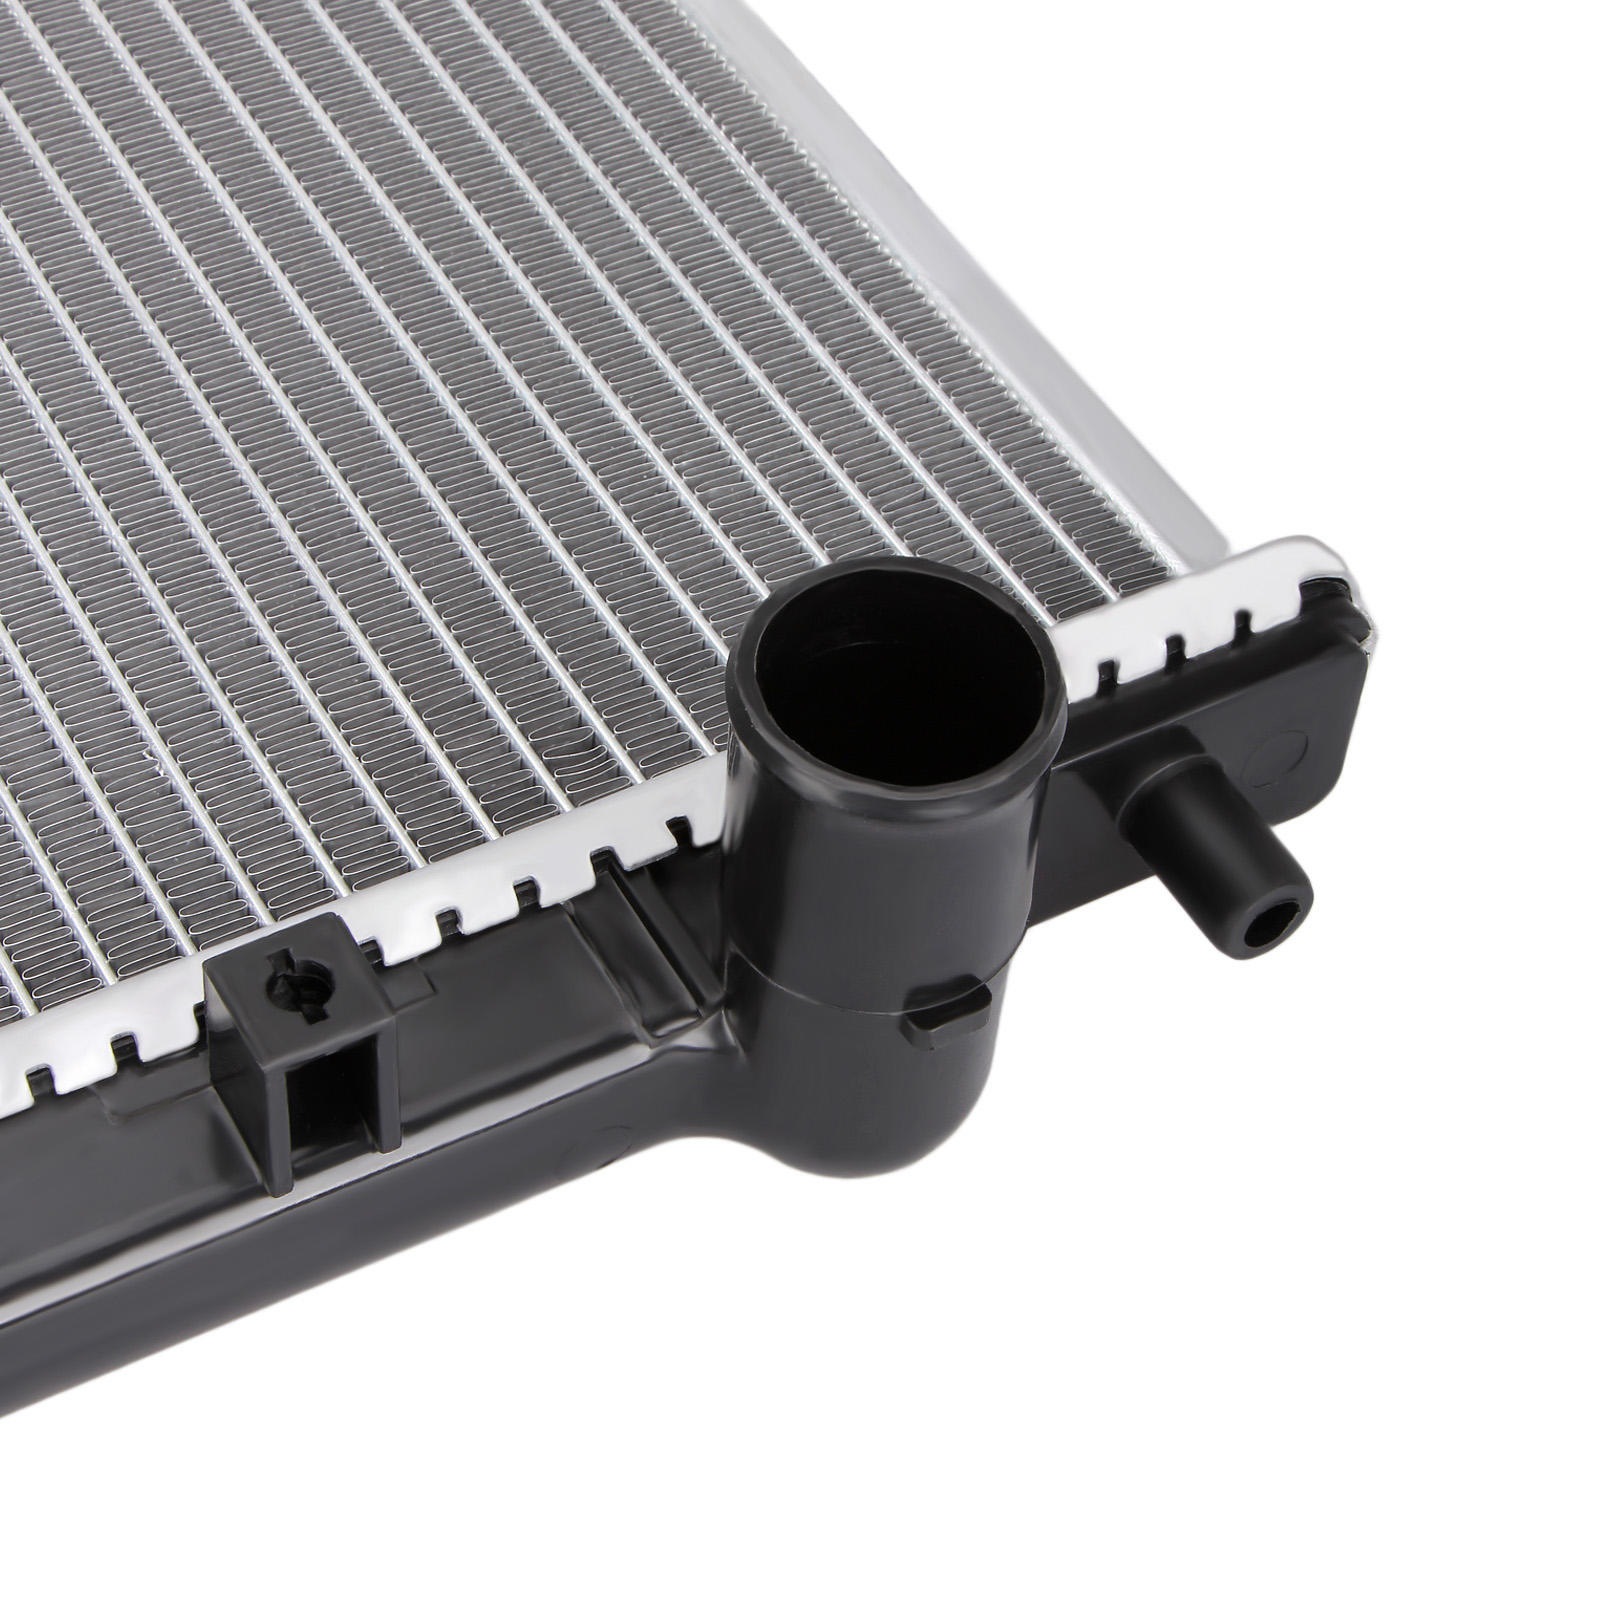 Auto Radiator for Mitsubishi Pajero / Shogun MK3 MK4 3.2 Diesel Automatic/Manual